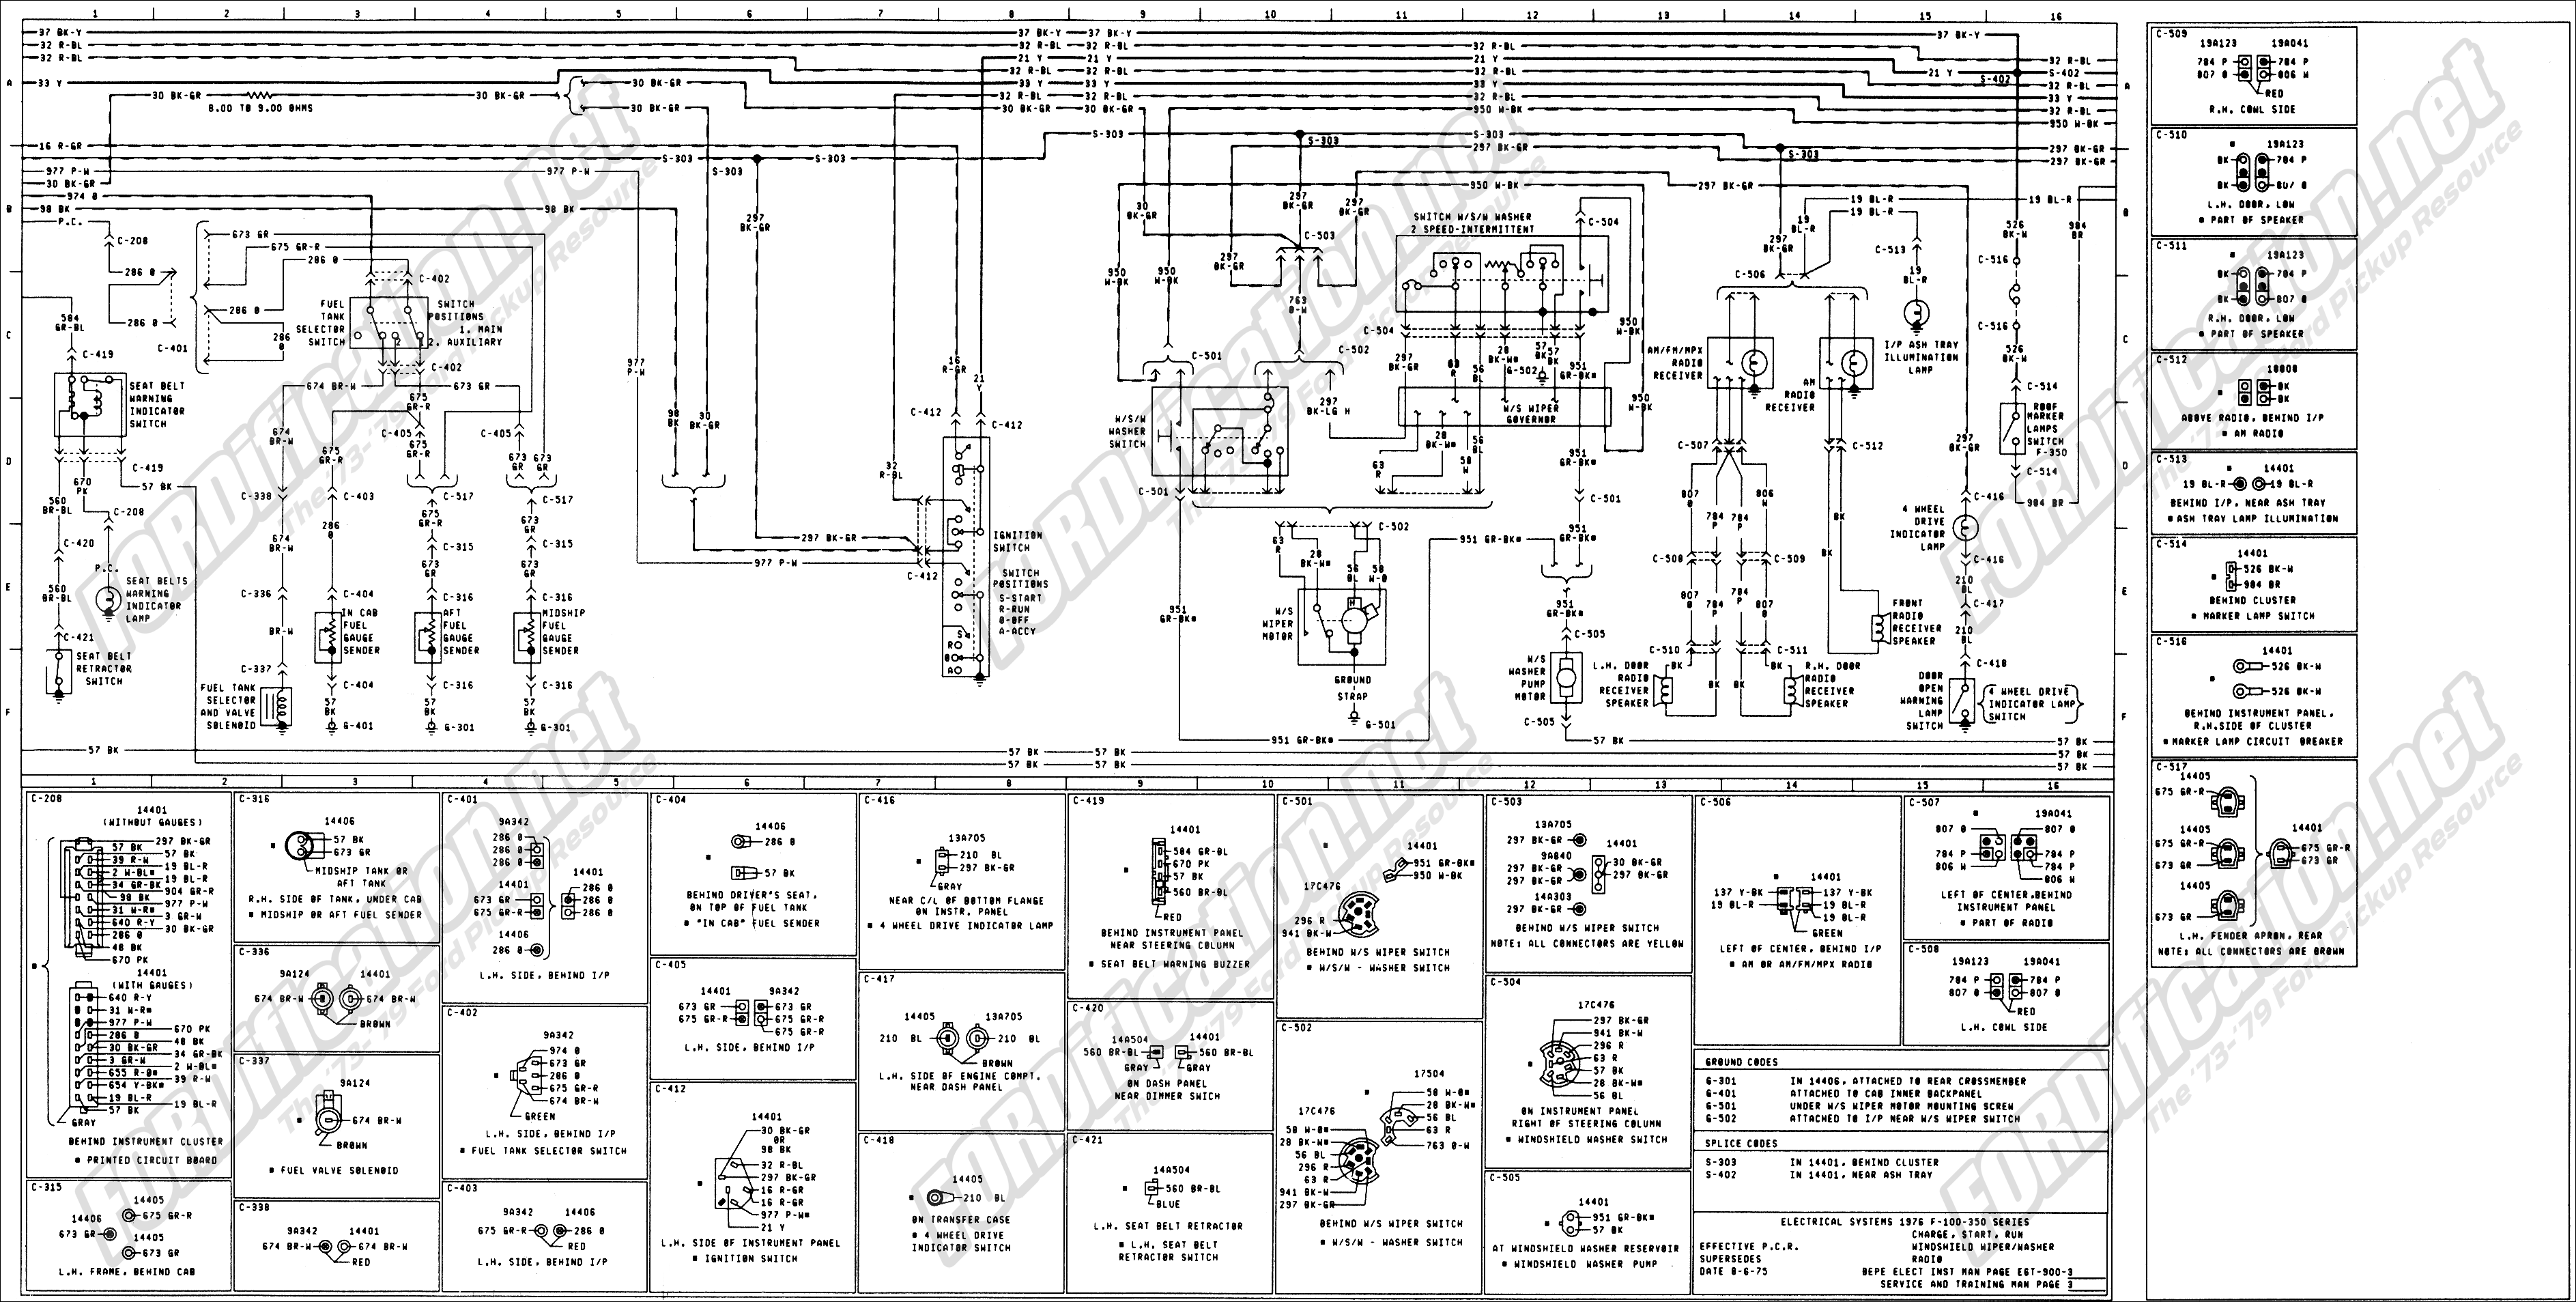 wiring_76master_3of9 1994 ford super duty wiring diagram wiring diagram simonand ford wiring diagrams at creativeand.co